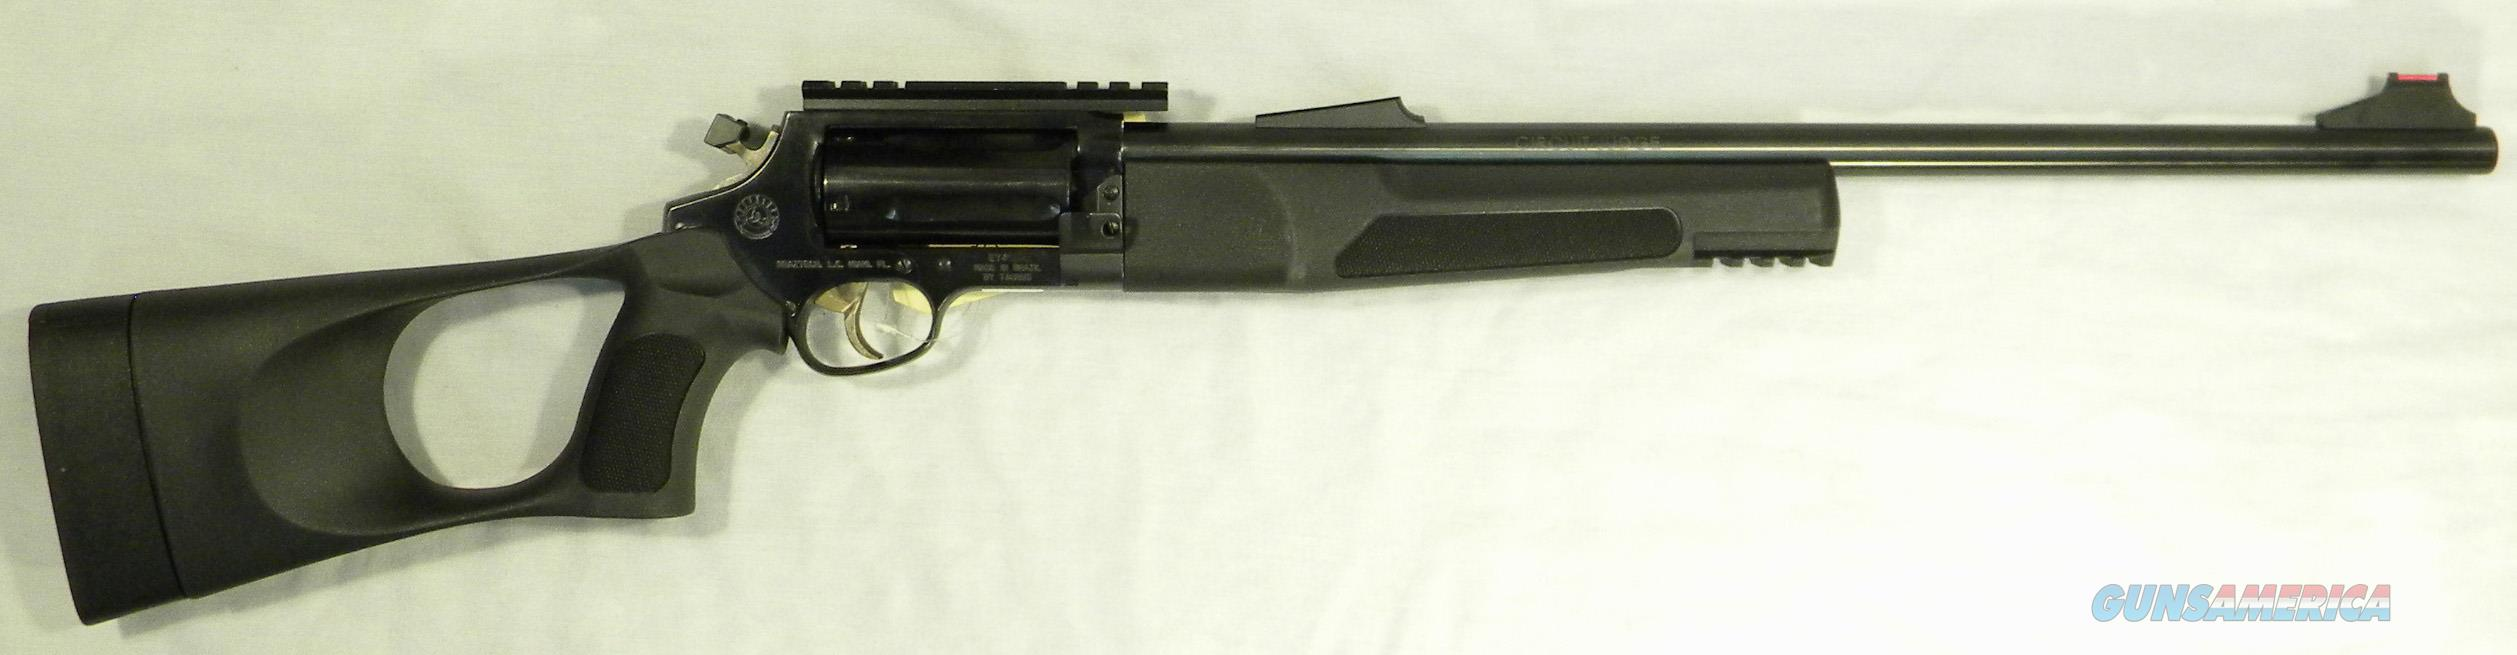 """Rossi """"Circuit Judge"""" Revolver Rifle, .45 Long Colt And .410 Shotgun Shells, 18-1/2"""" Blued, In """"Tuffy"""" Composite Stock  Guns > Rifles > Rossi Rifles > Other"""